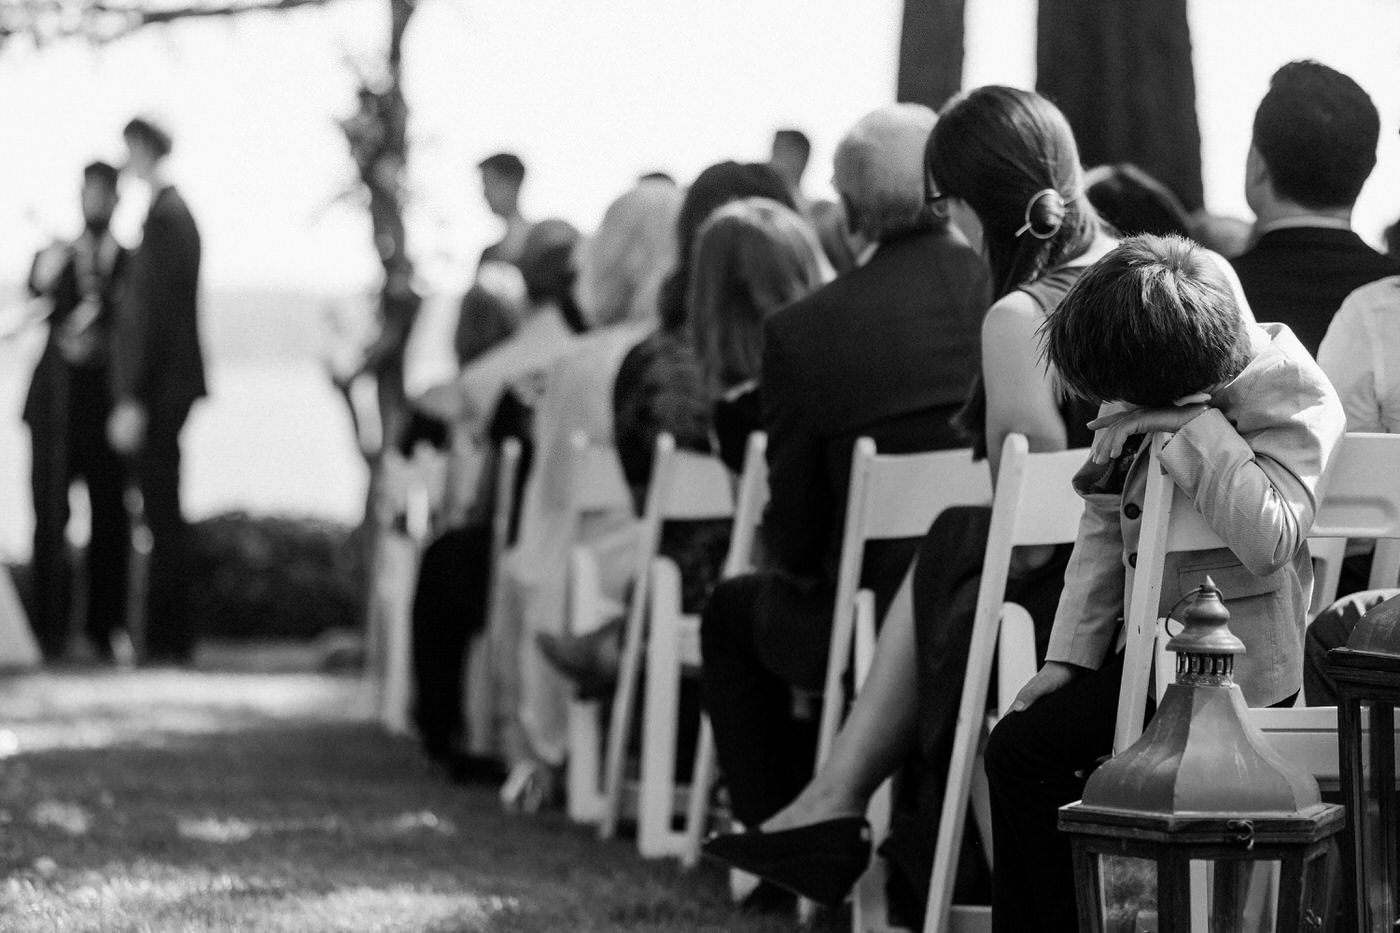 133-pacific-northwest-wedding-photography-by-ryan-flynn.jpg